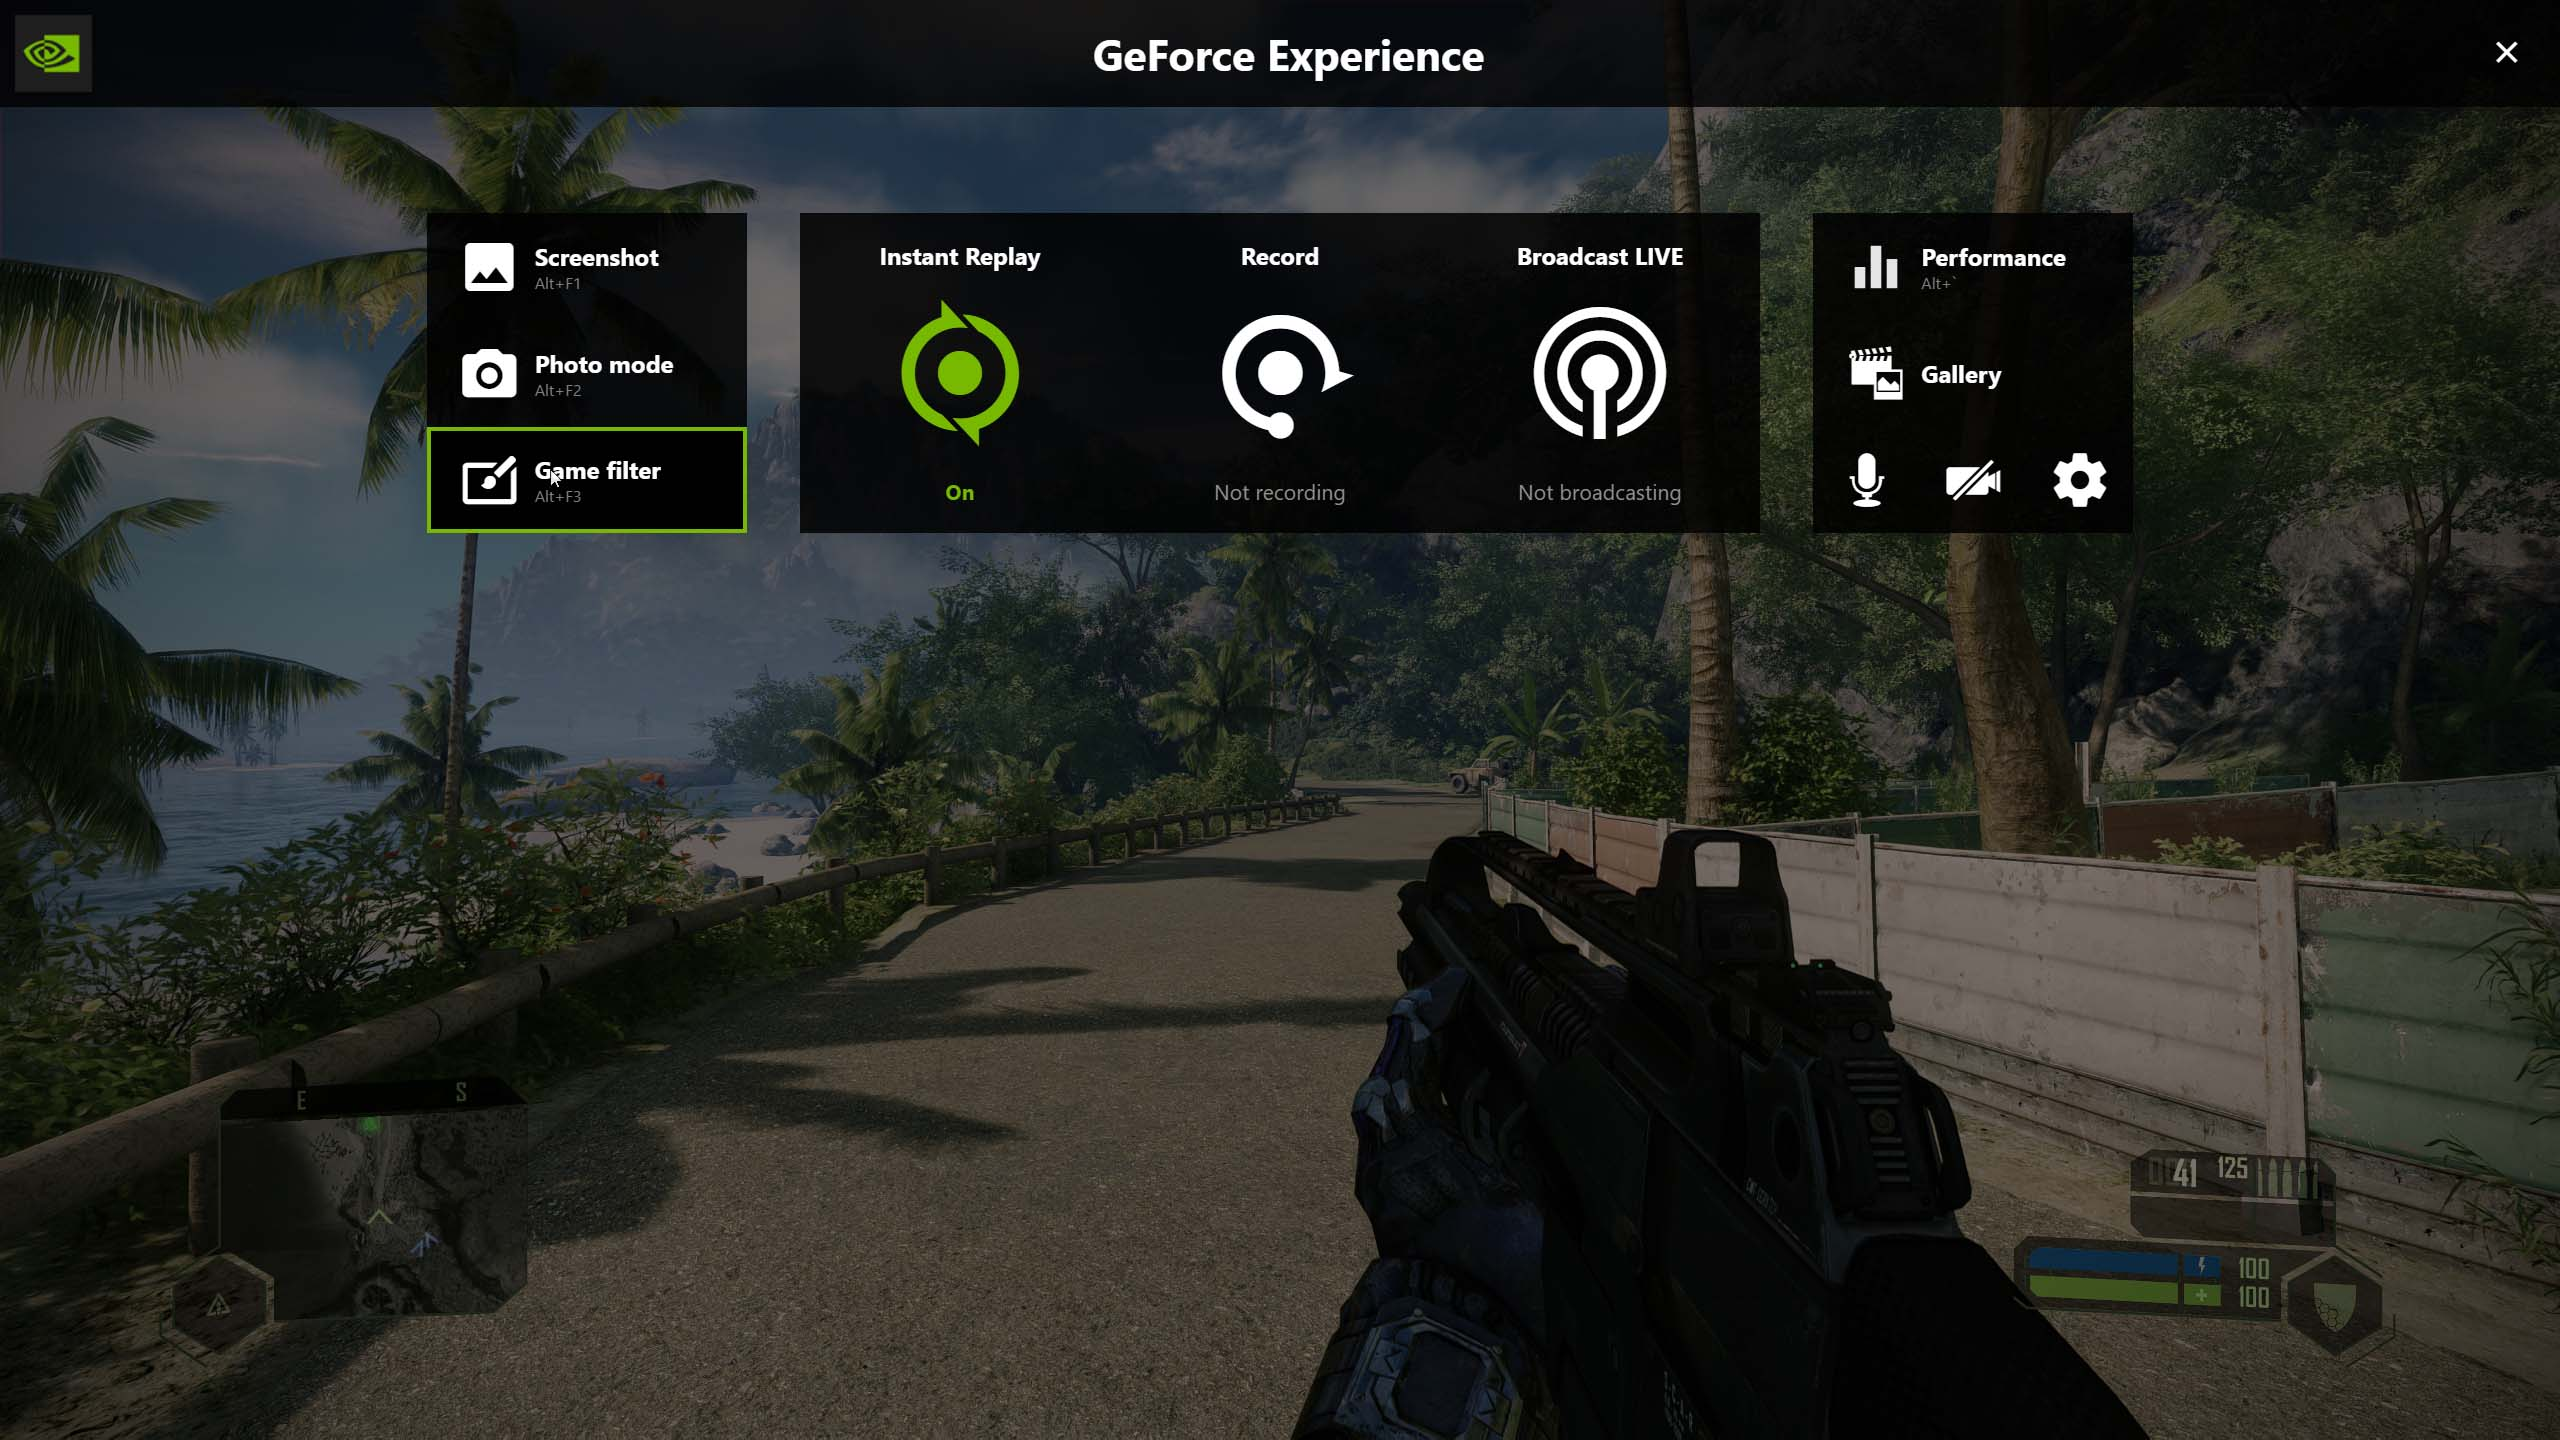 Crysis Remastered - How to Improve Image Quality on Geforce Experience in Game - Color settings - 9E7D04D